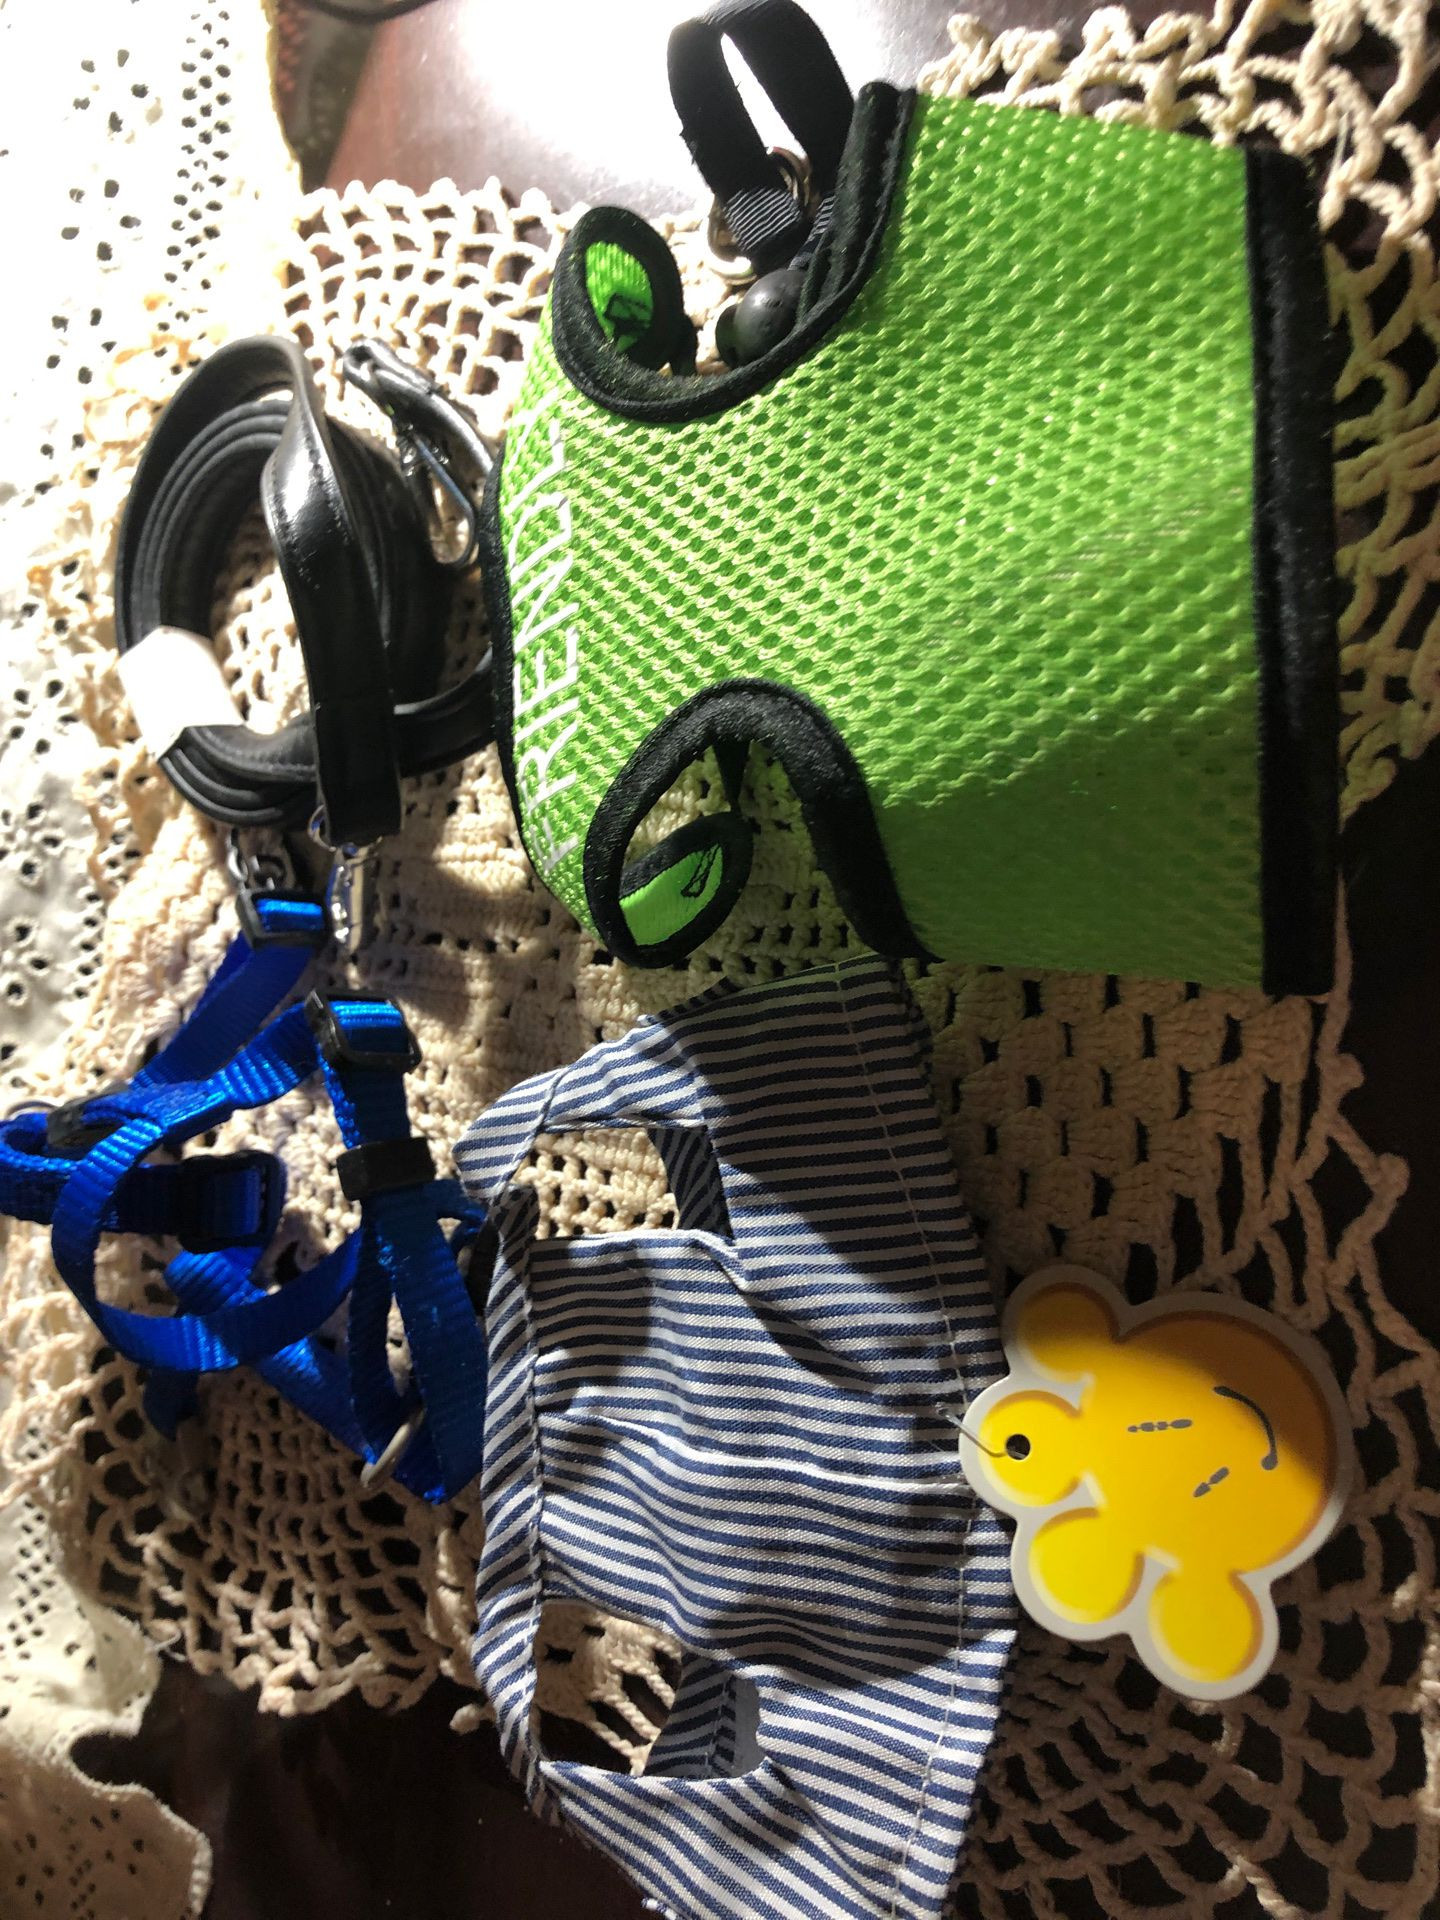 Under 5lbs dogs leash and harness